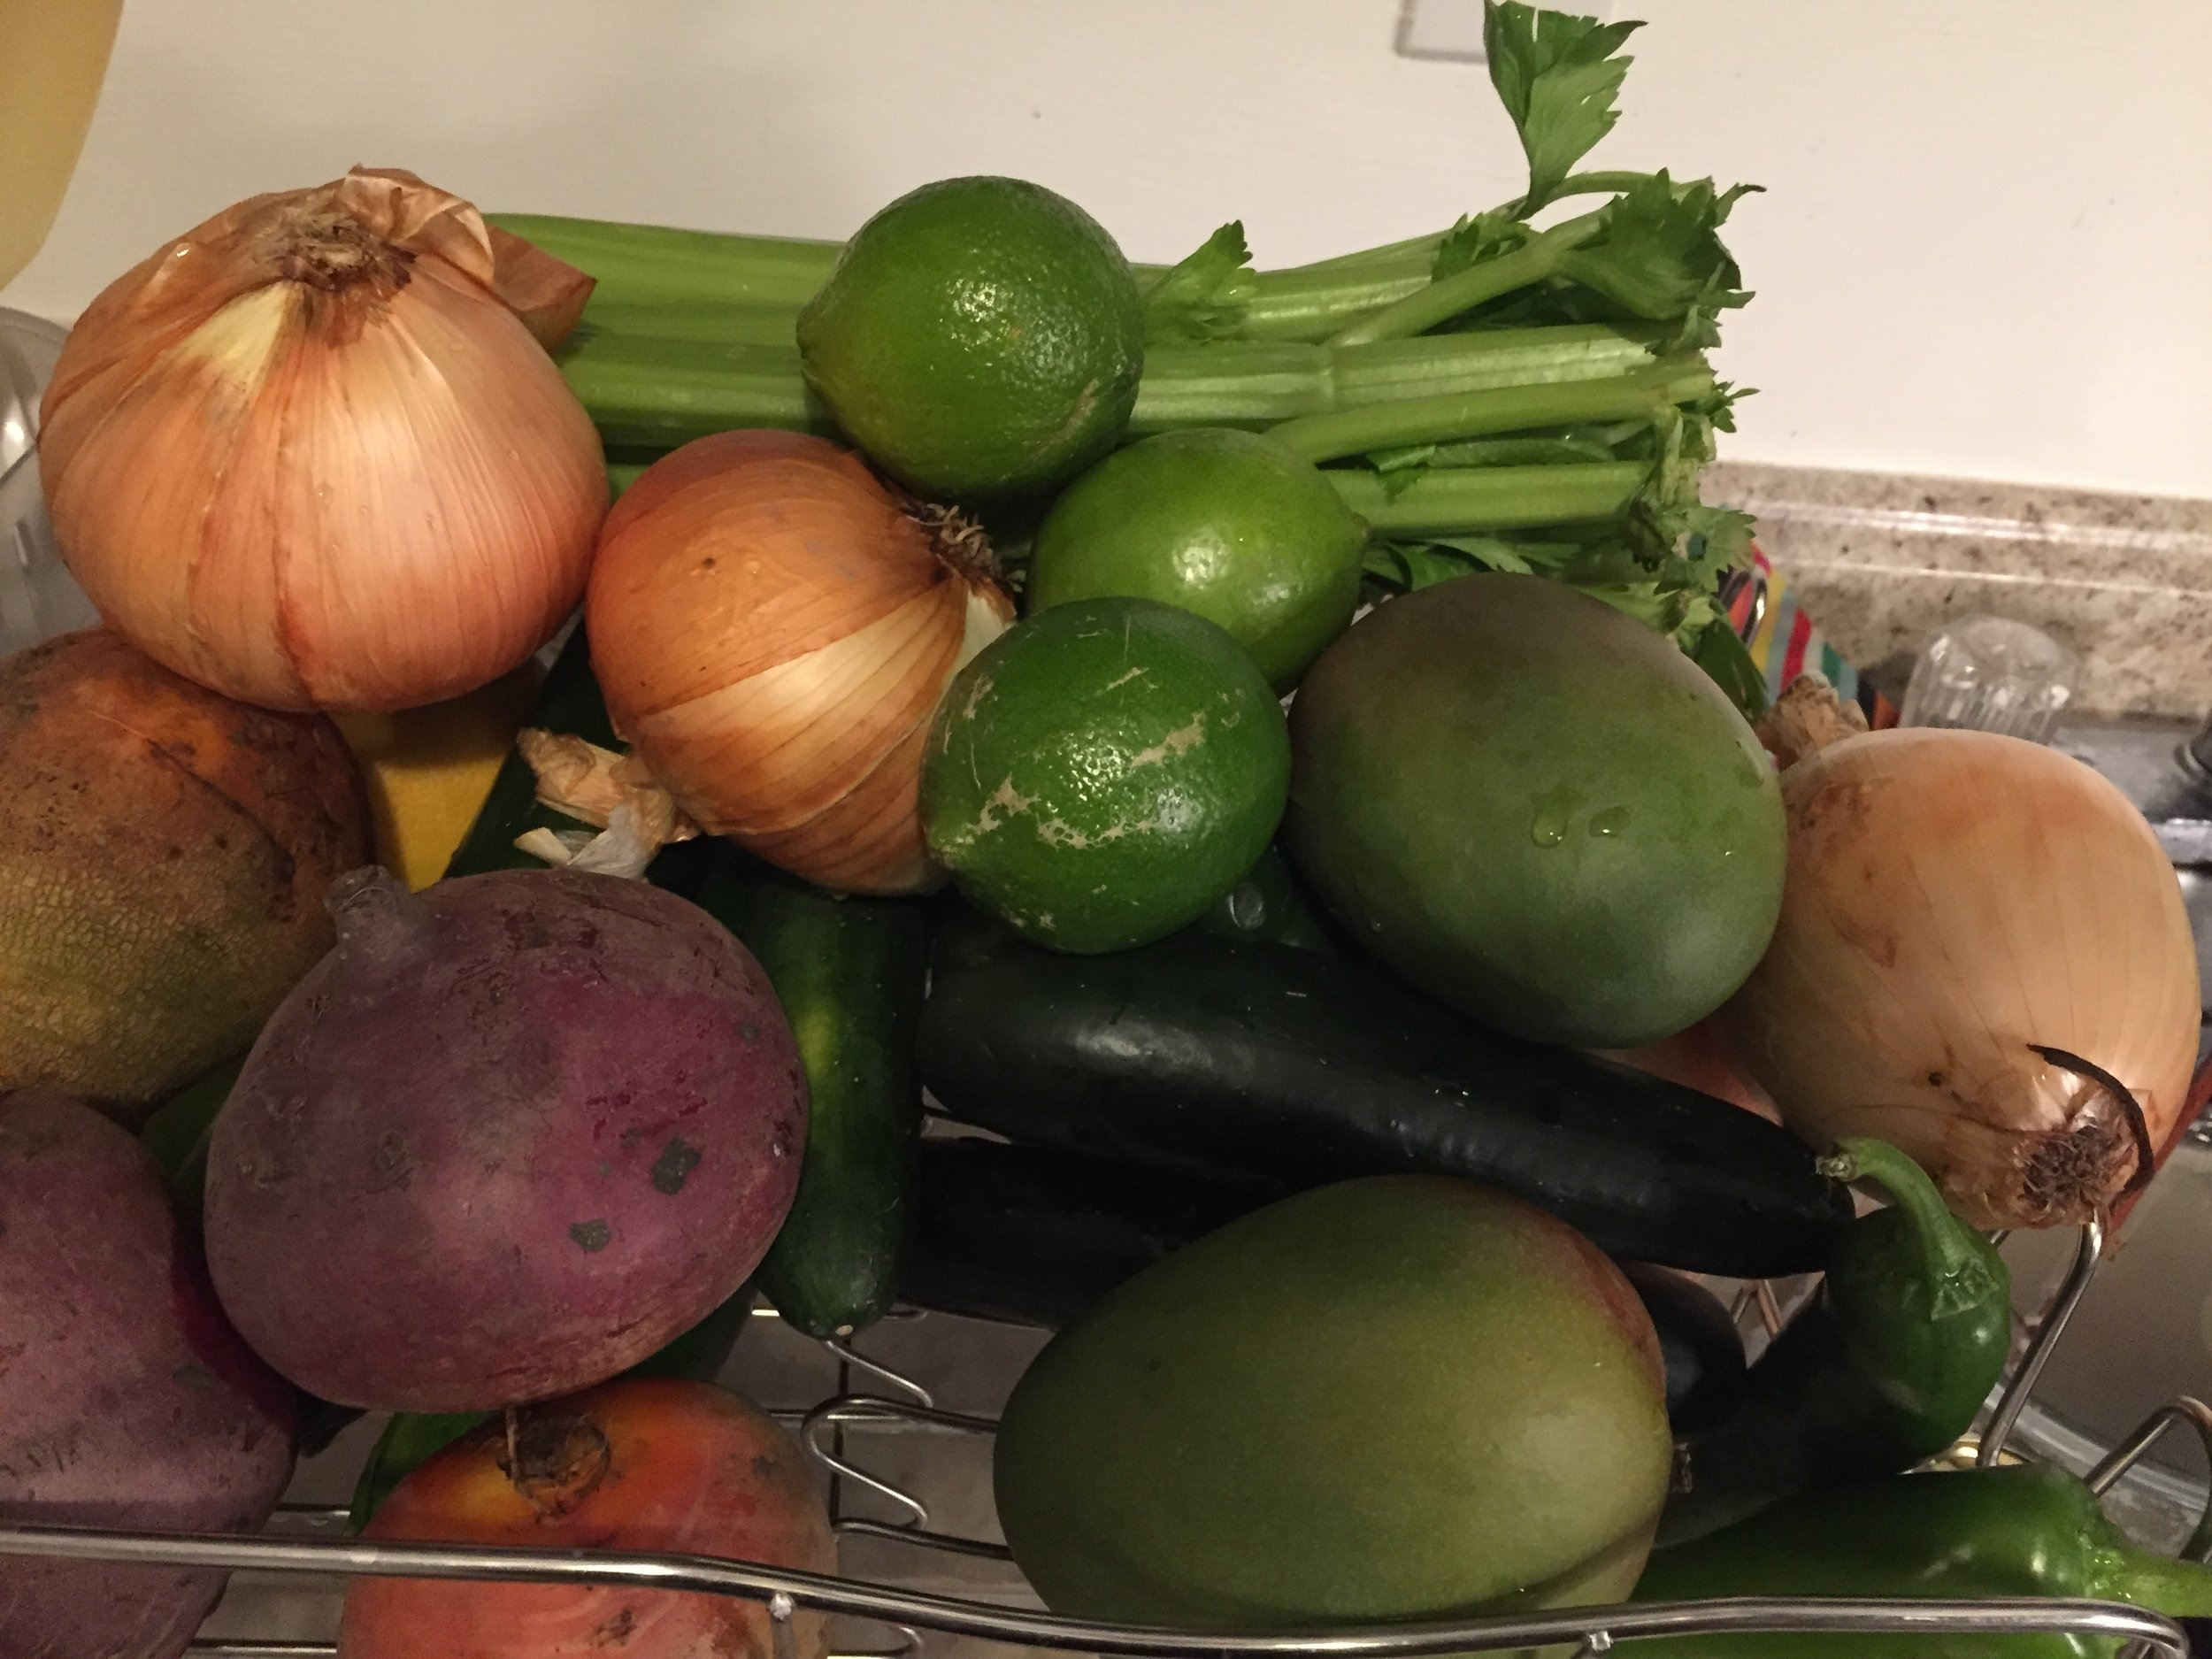 One week's worth of produce from Misfits Markets. Not pictured: Brussels sprouts. Costs around $24. Note the mango.